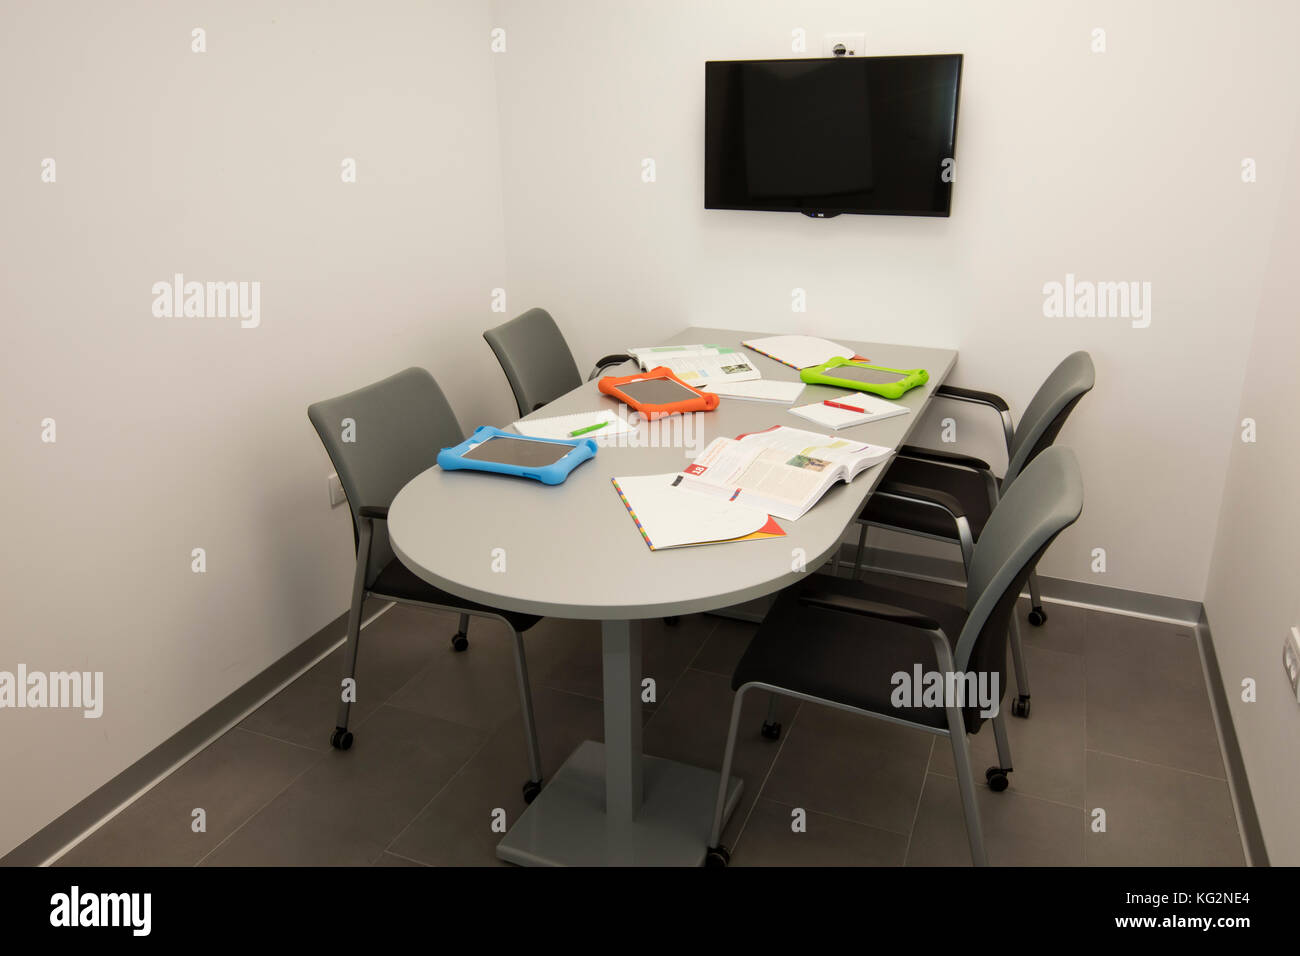 Meeting Room Tables Small Meeting Room With A Single Table With Four Chairs Papers